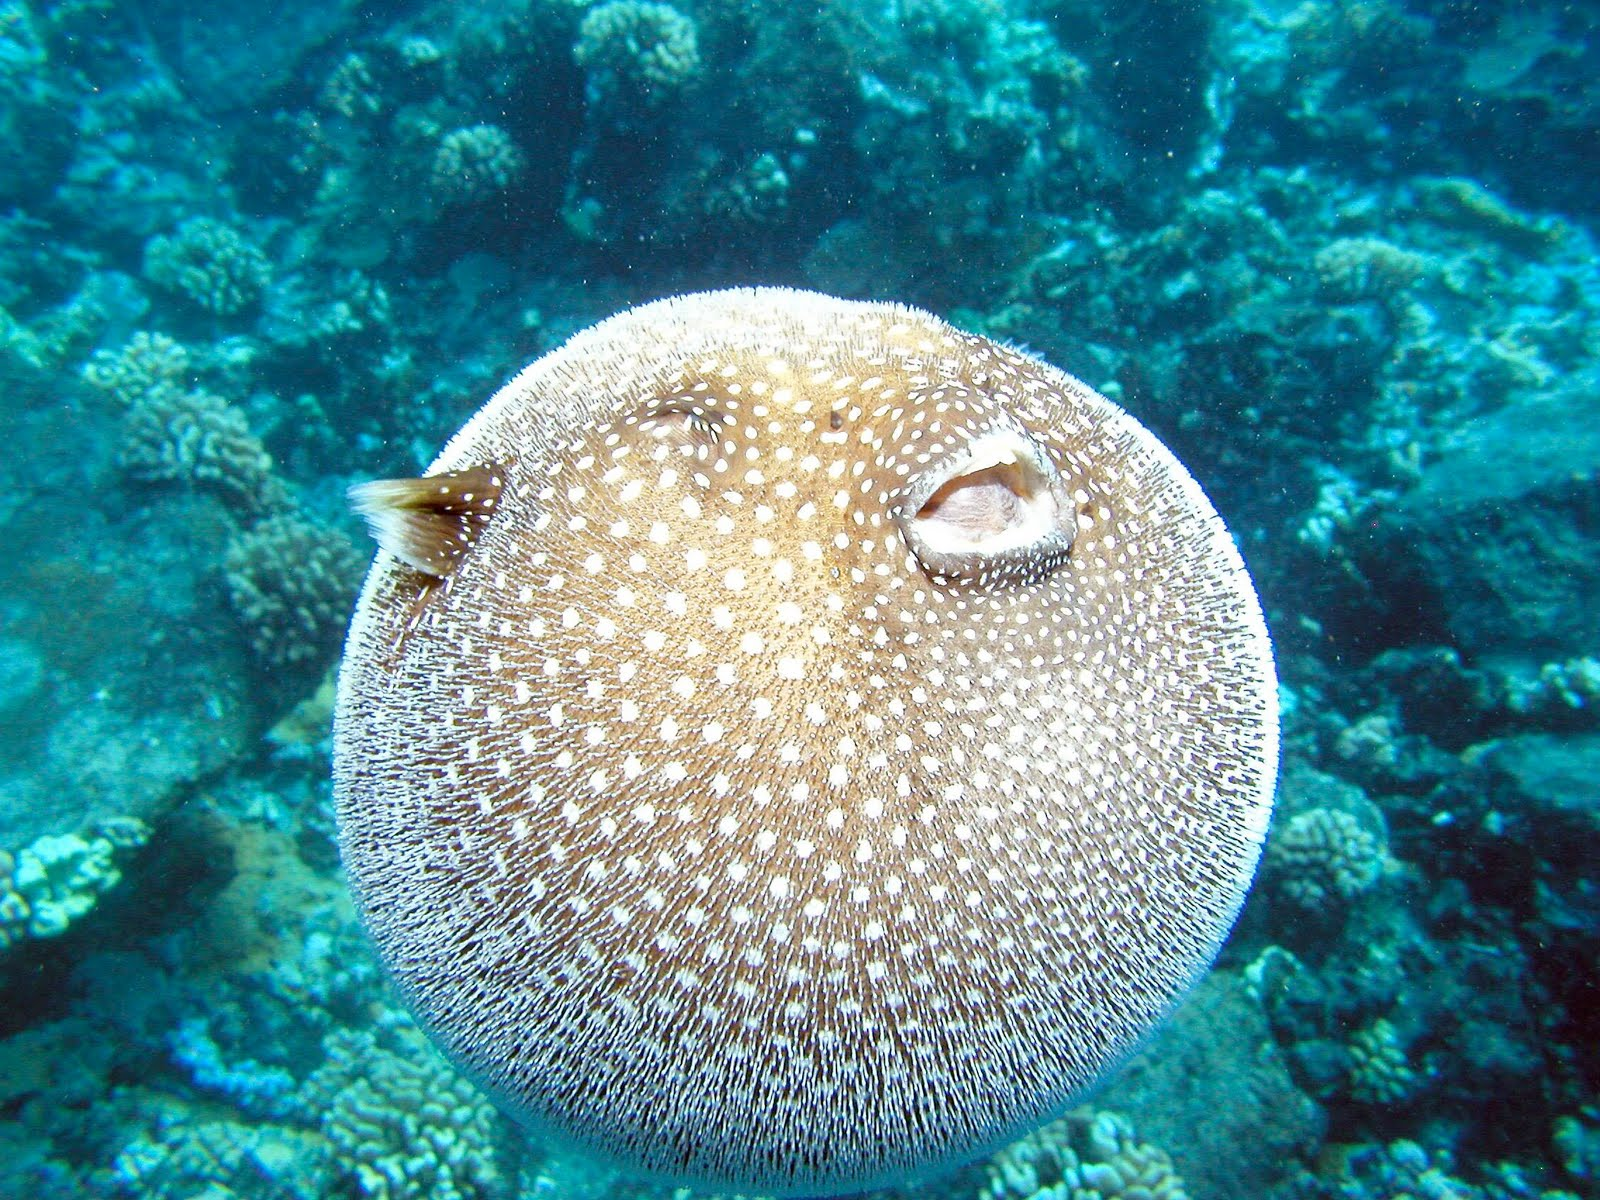 Dwarf puffer fish puffed up for Puffer fish puffing